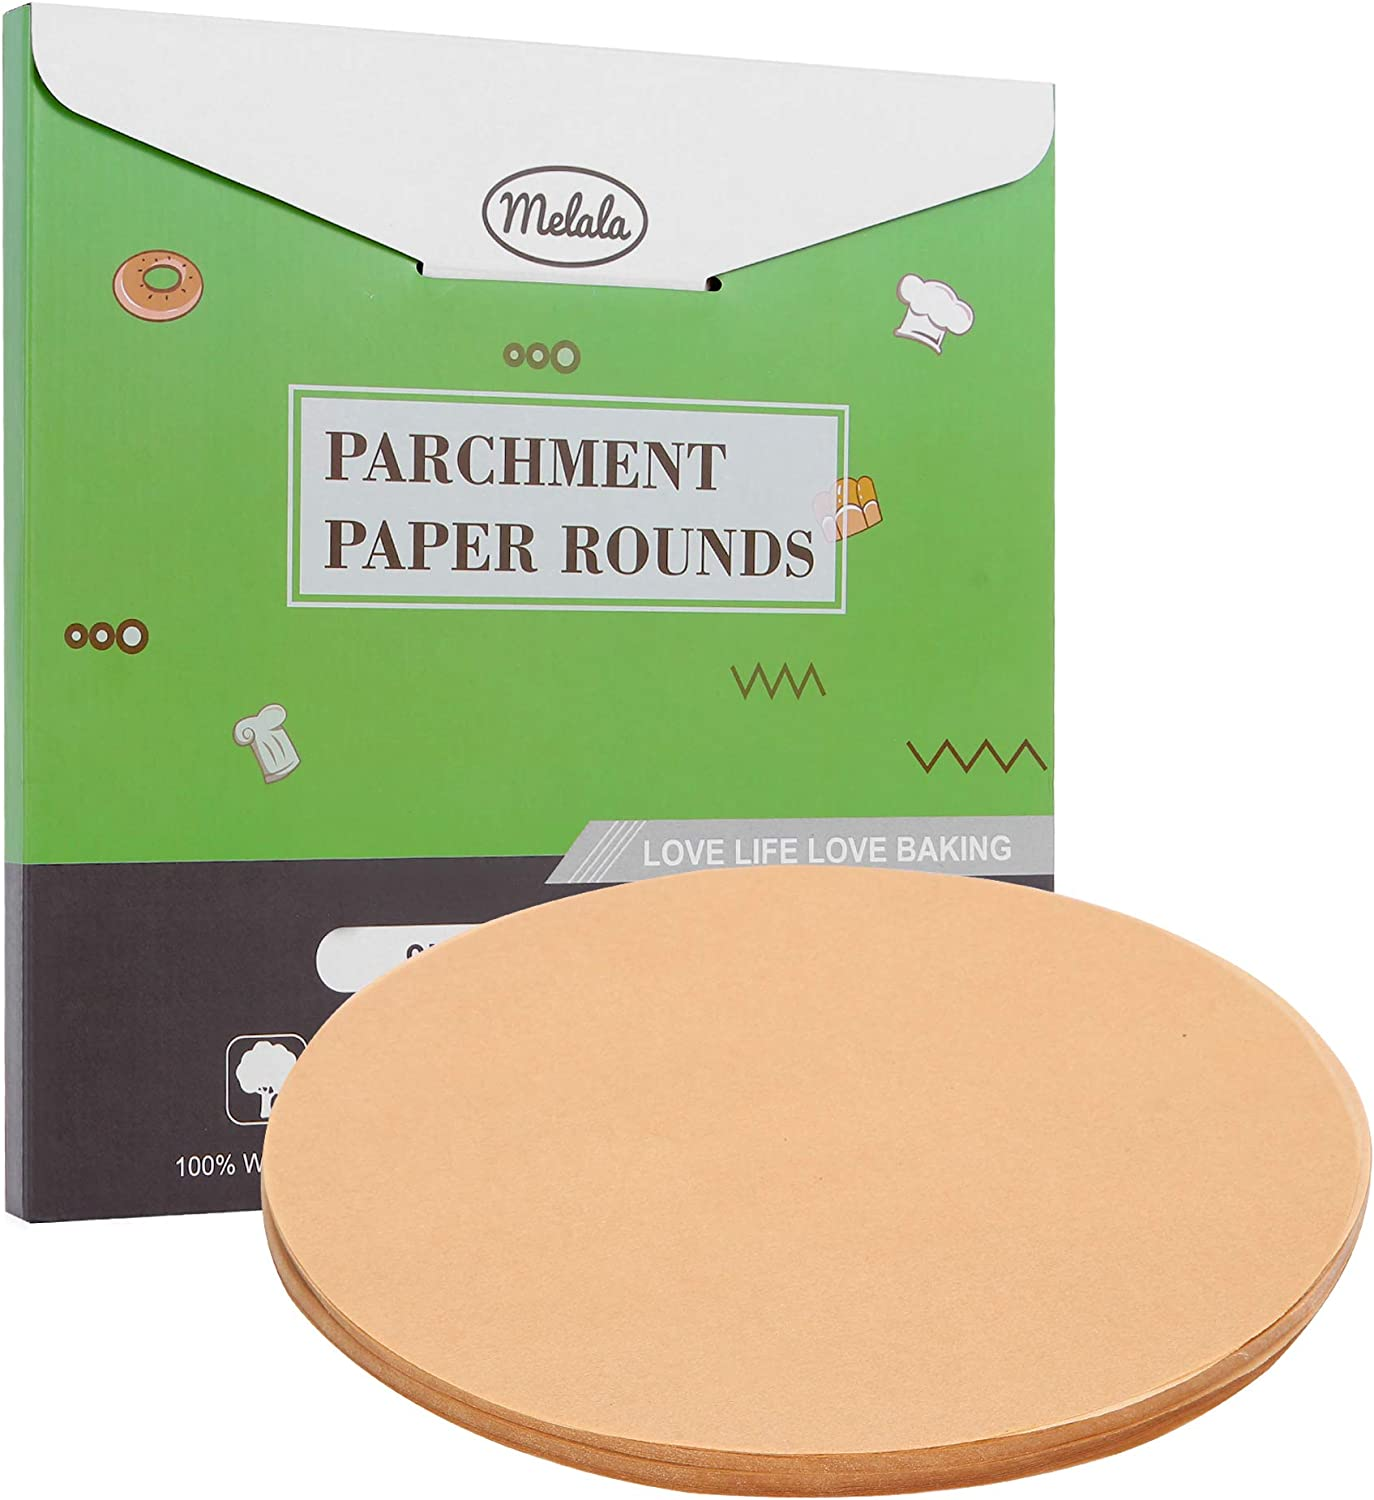 Melala 200Pcs Parchment Paper Rounds for Baking, 9 Inch Unbleached Non-Stick Precut Parchment Paper Liners for Air Fryer,Round Cake Pan,Springform Pan,Tortilla Press,Toaster Oven(Unbleached)